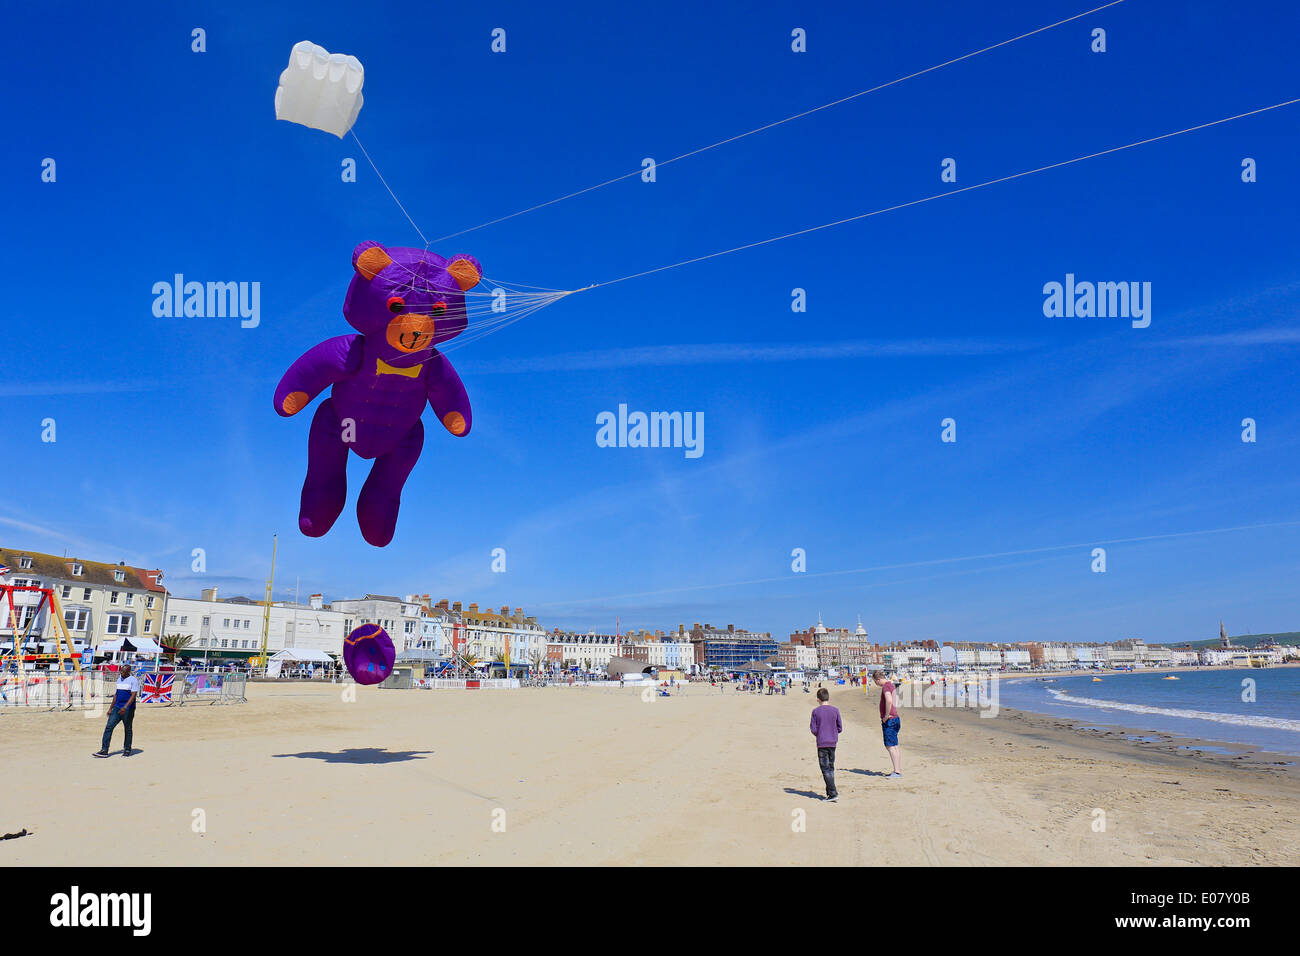 Weymouth, Dorset, UK, 03 May 2014: The opening day of Weymouth Kite Festival.Weymouth, Dorset,UK - Stock Image